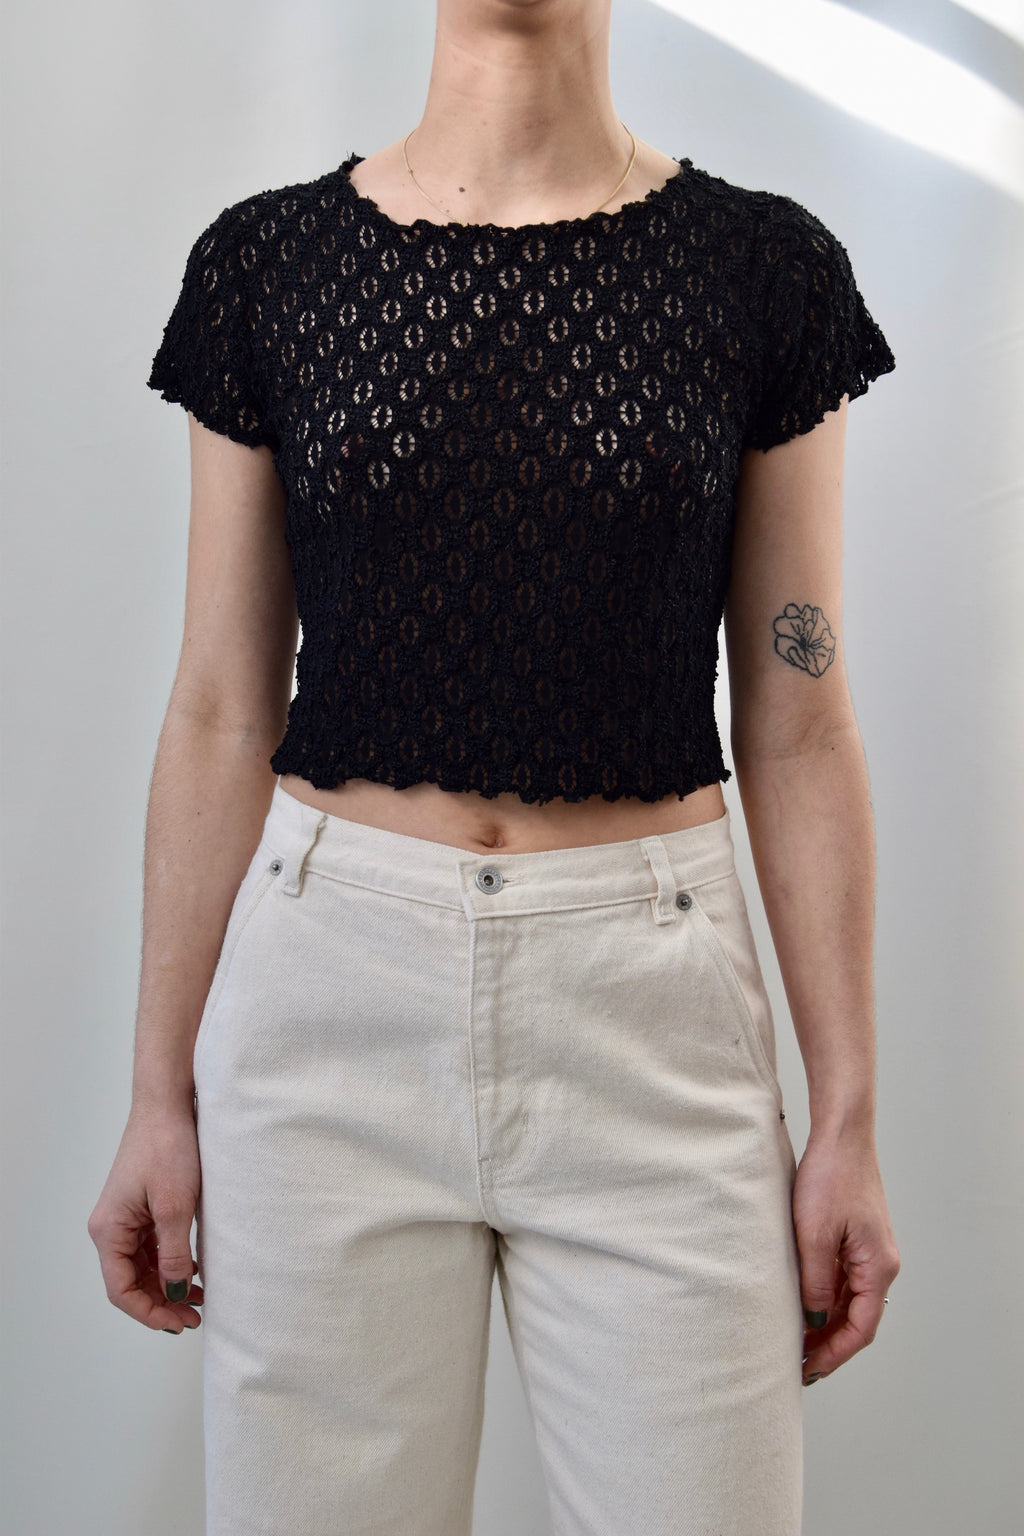 Black Lace Lettuce Edge Crop Top FREE SHIPPING TO THE U.S.